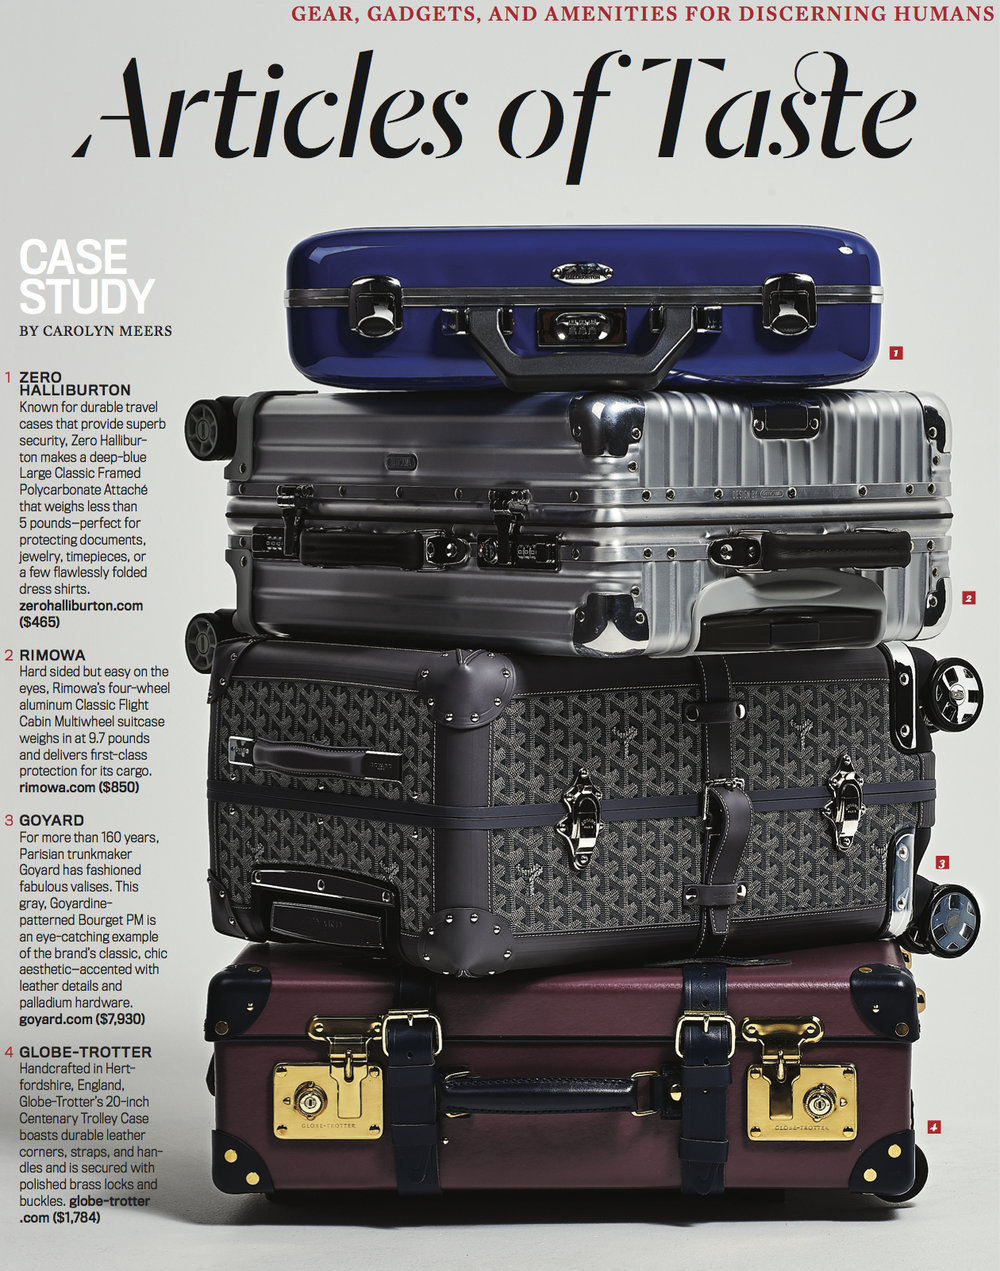 robbreport.luggage.jpg